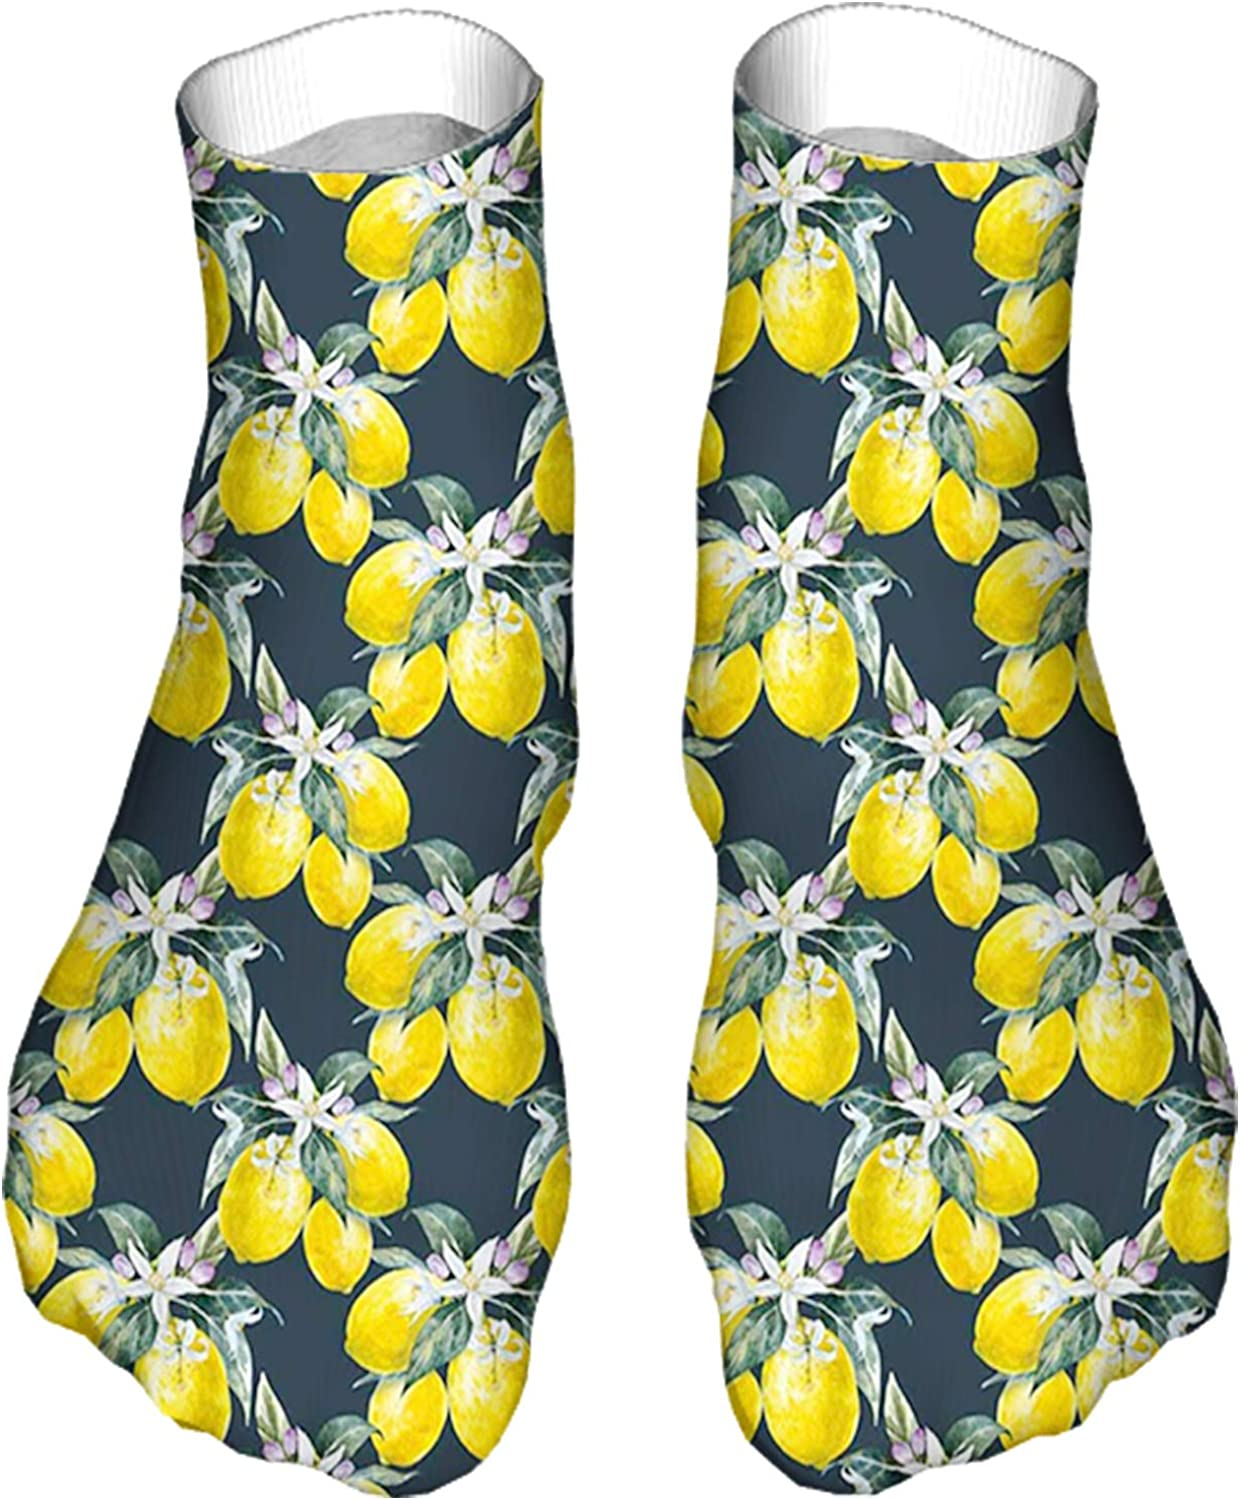 Men's and Women's Fun Socks Printed Cool Novelty Funny Socks,Lemon Tree with Flowering Plant Blooms Botany Eco Evergreen